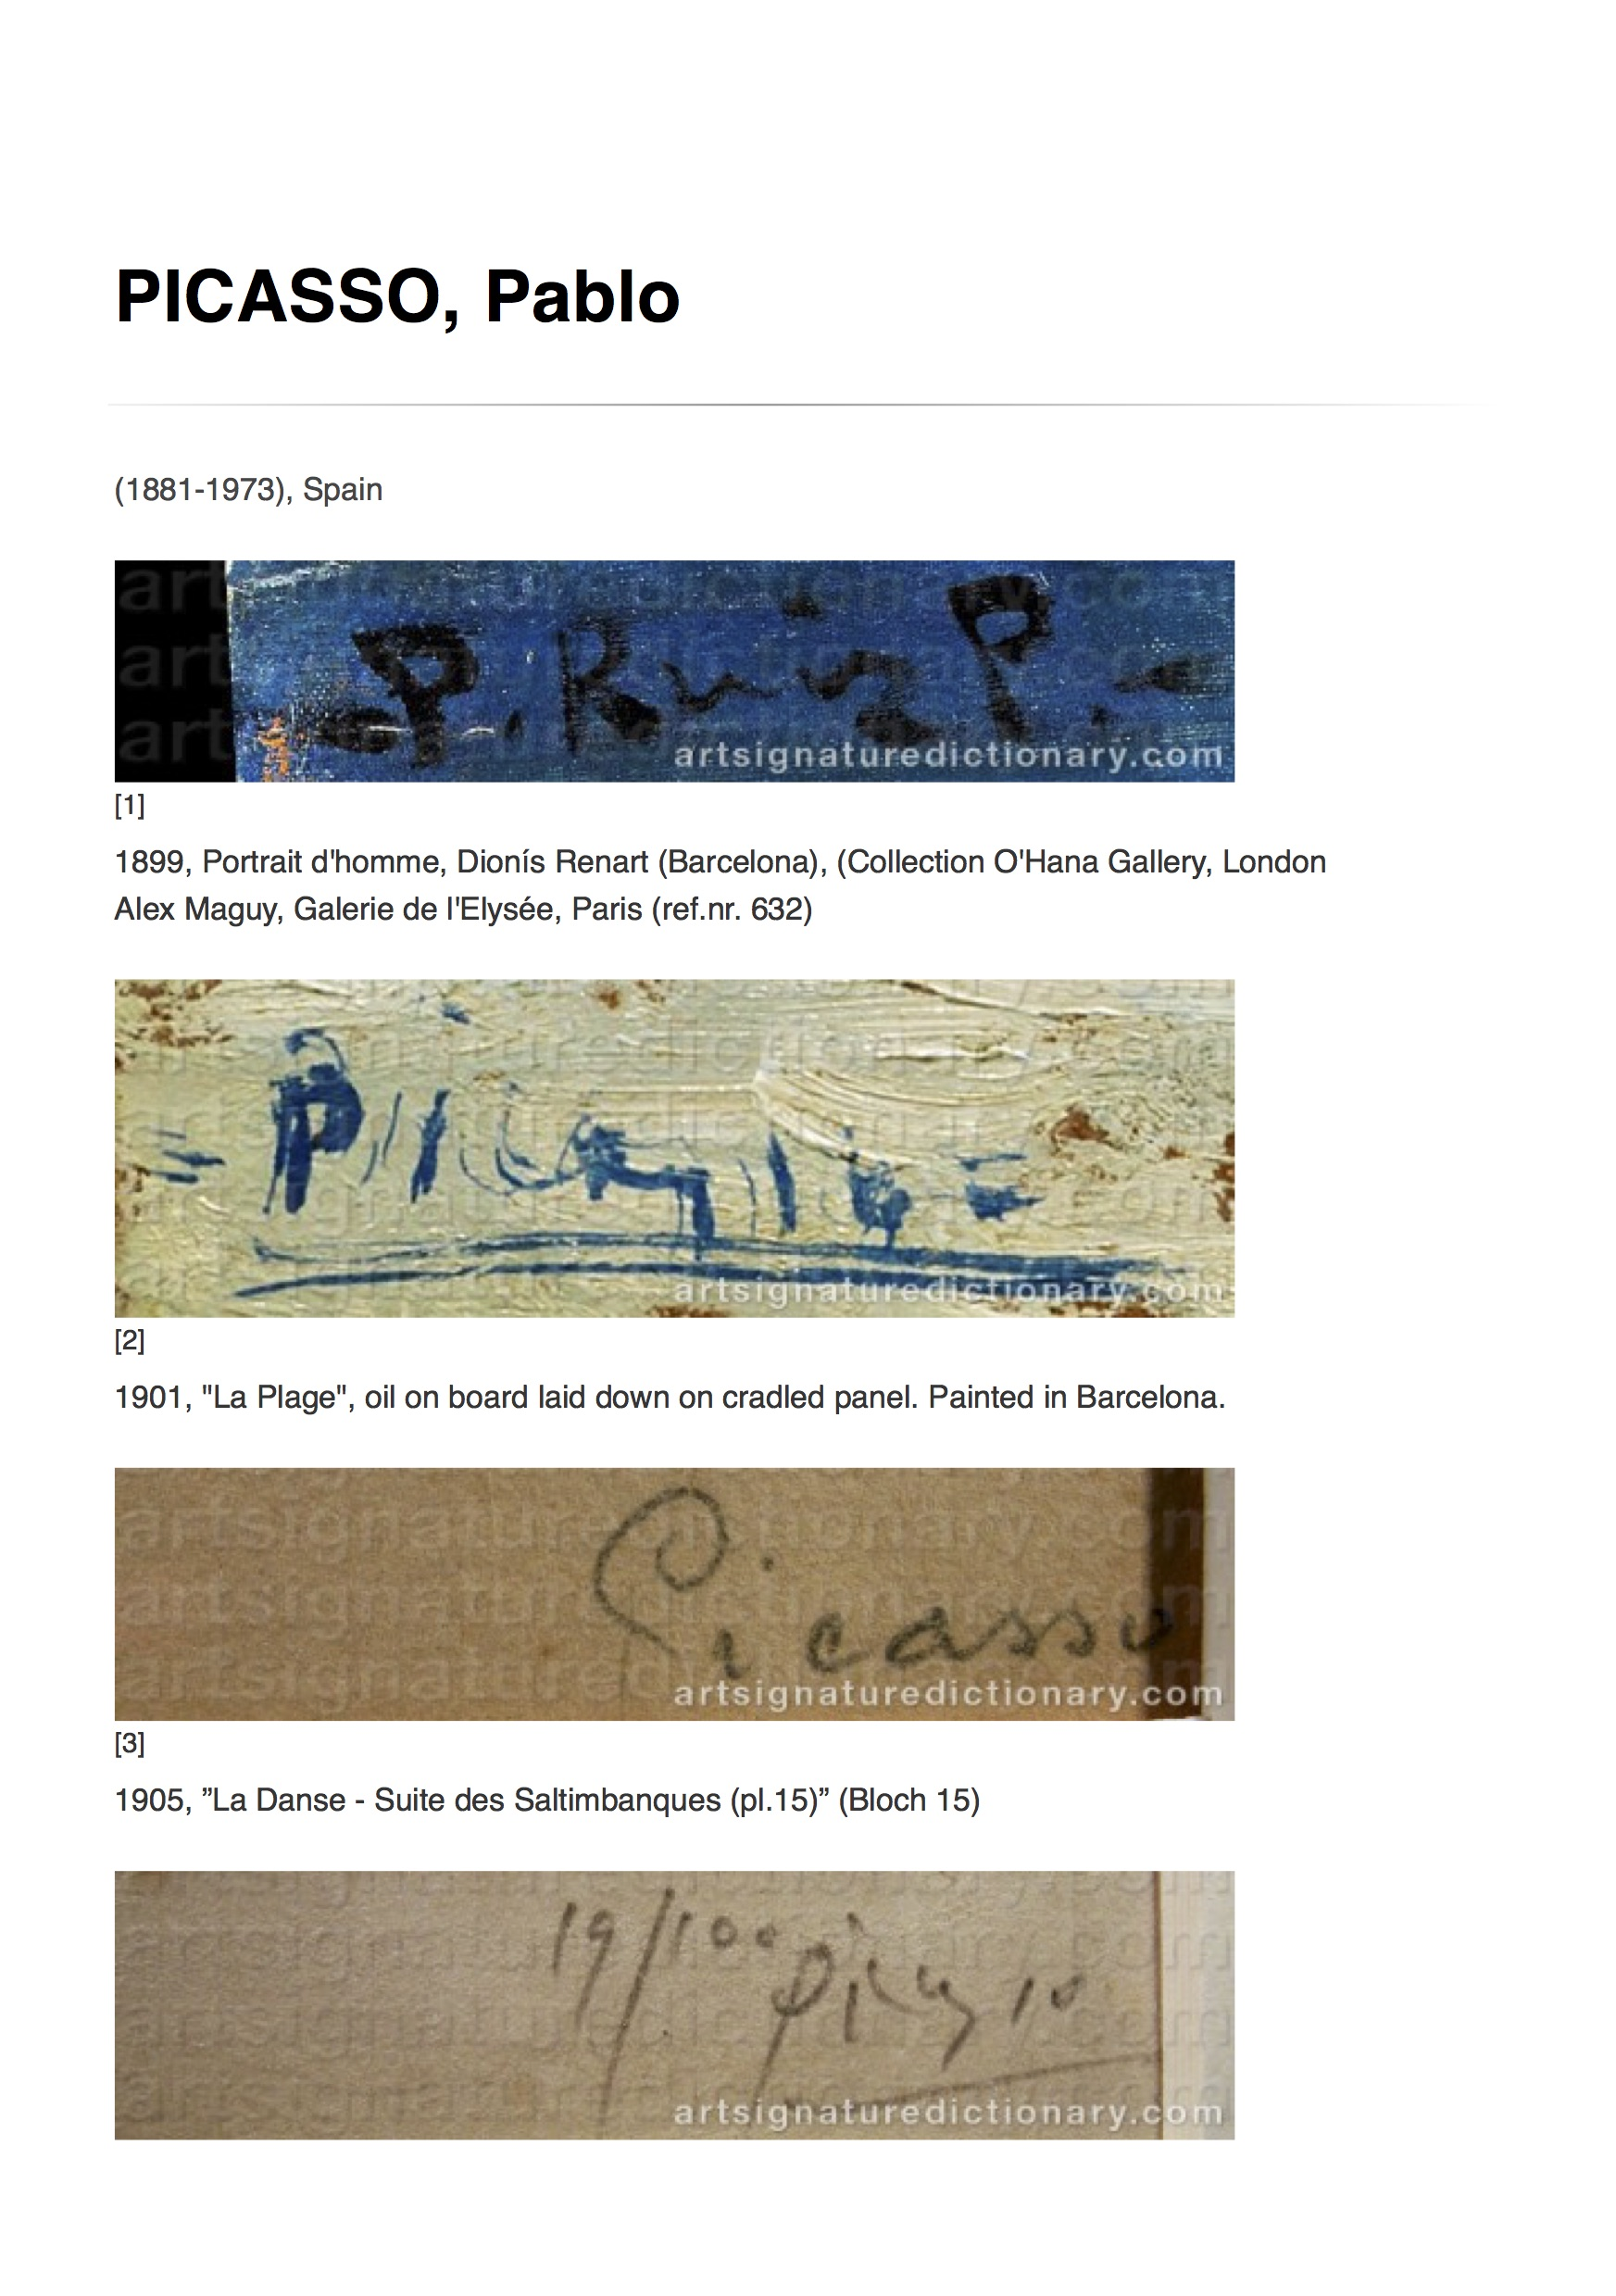 PICASSO, Pablo _ Artist's signatures and monograms, biographies and prices by Art Signature Dictionary.jpg